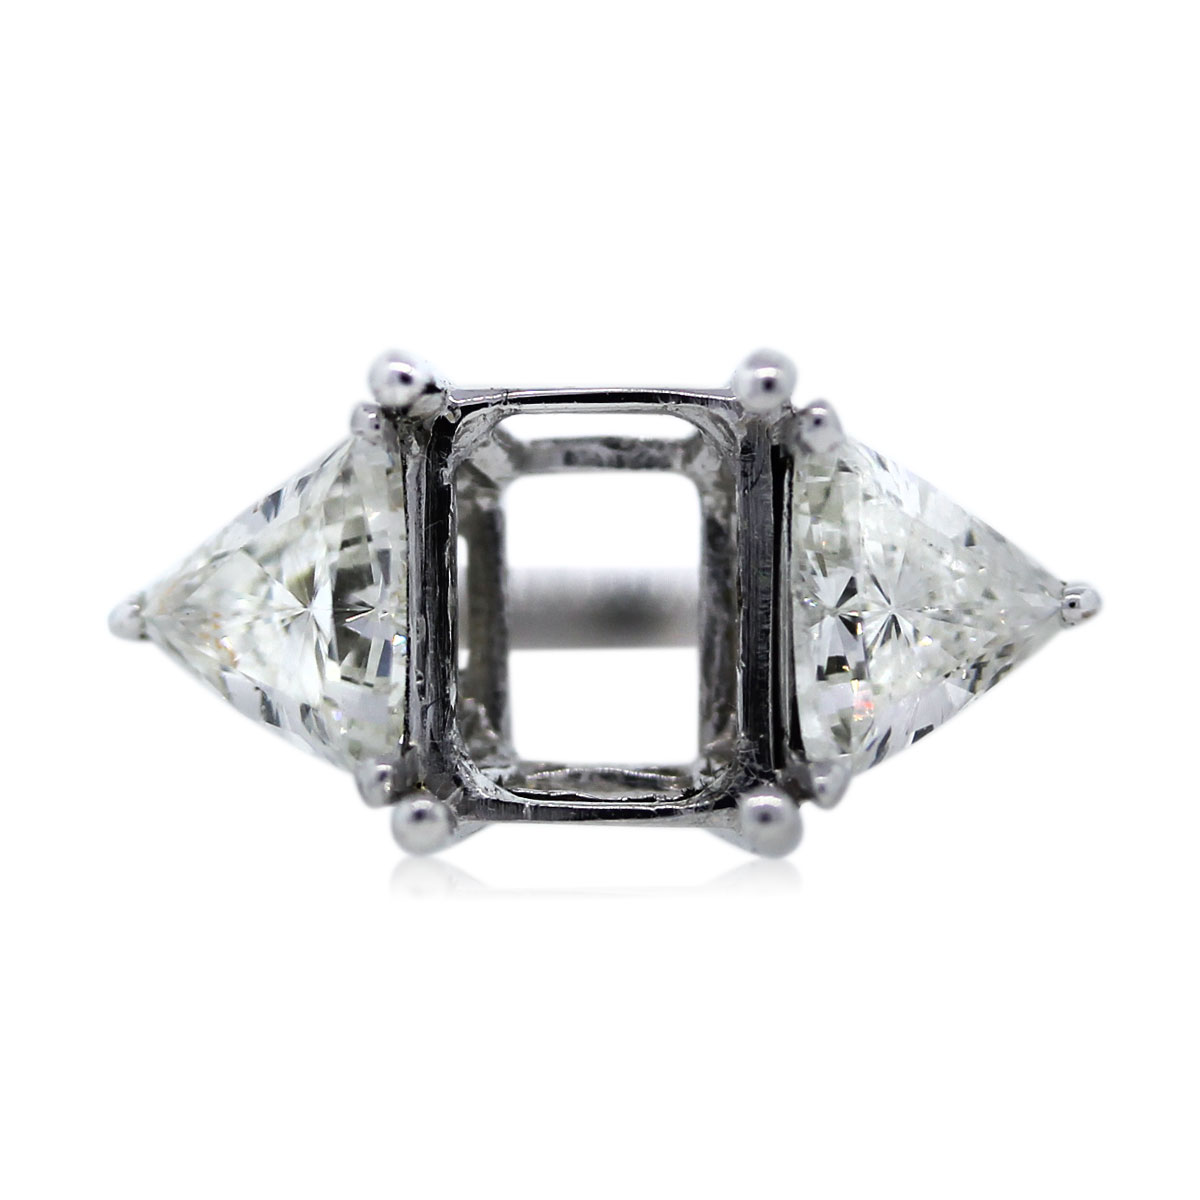 You are Viewing this Stunning Trillion Cut Diamond Ring!